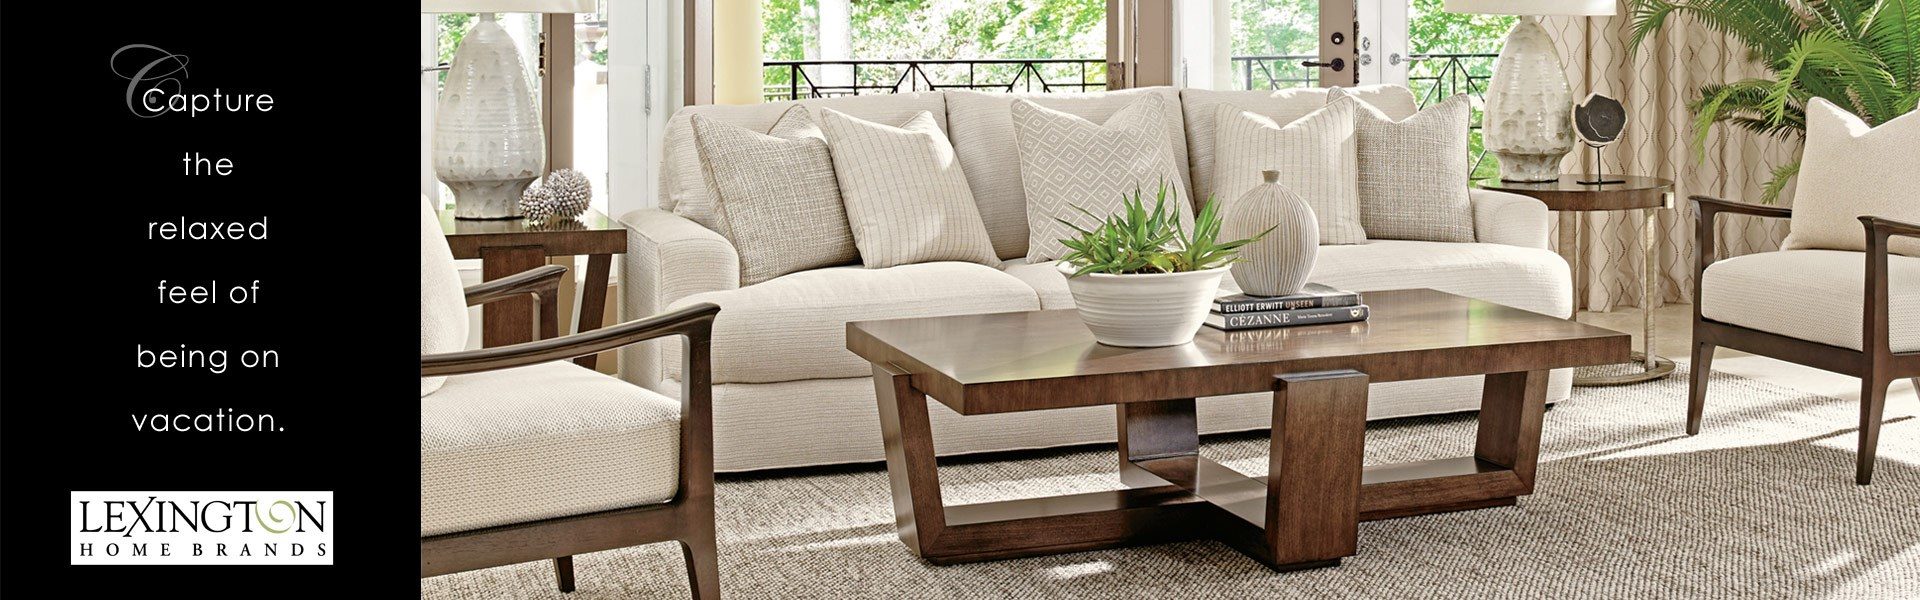 long beach anaheim los angeles south coast collection furniture